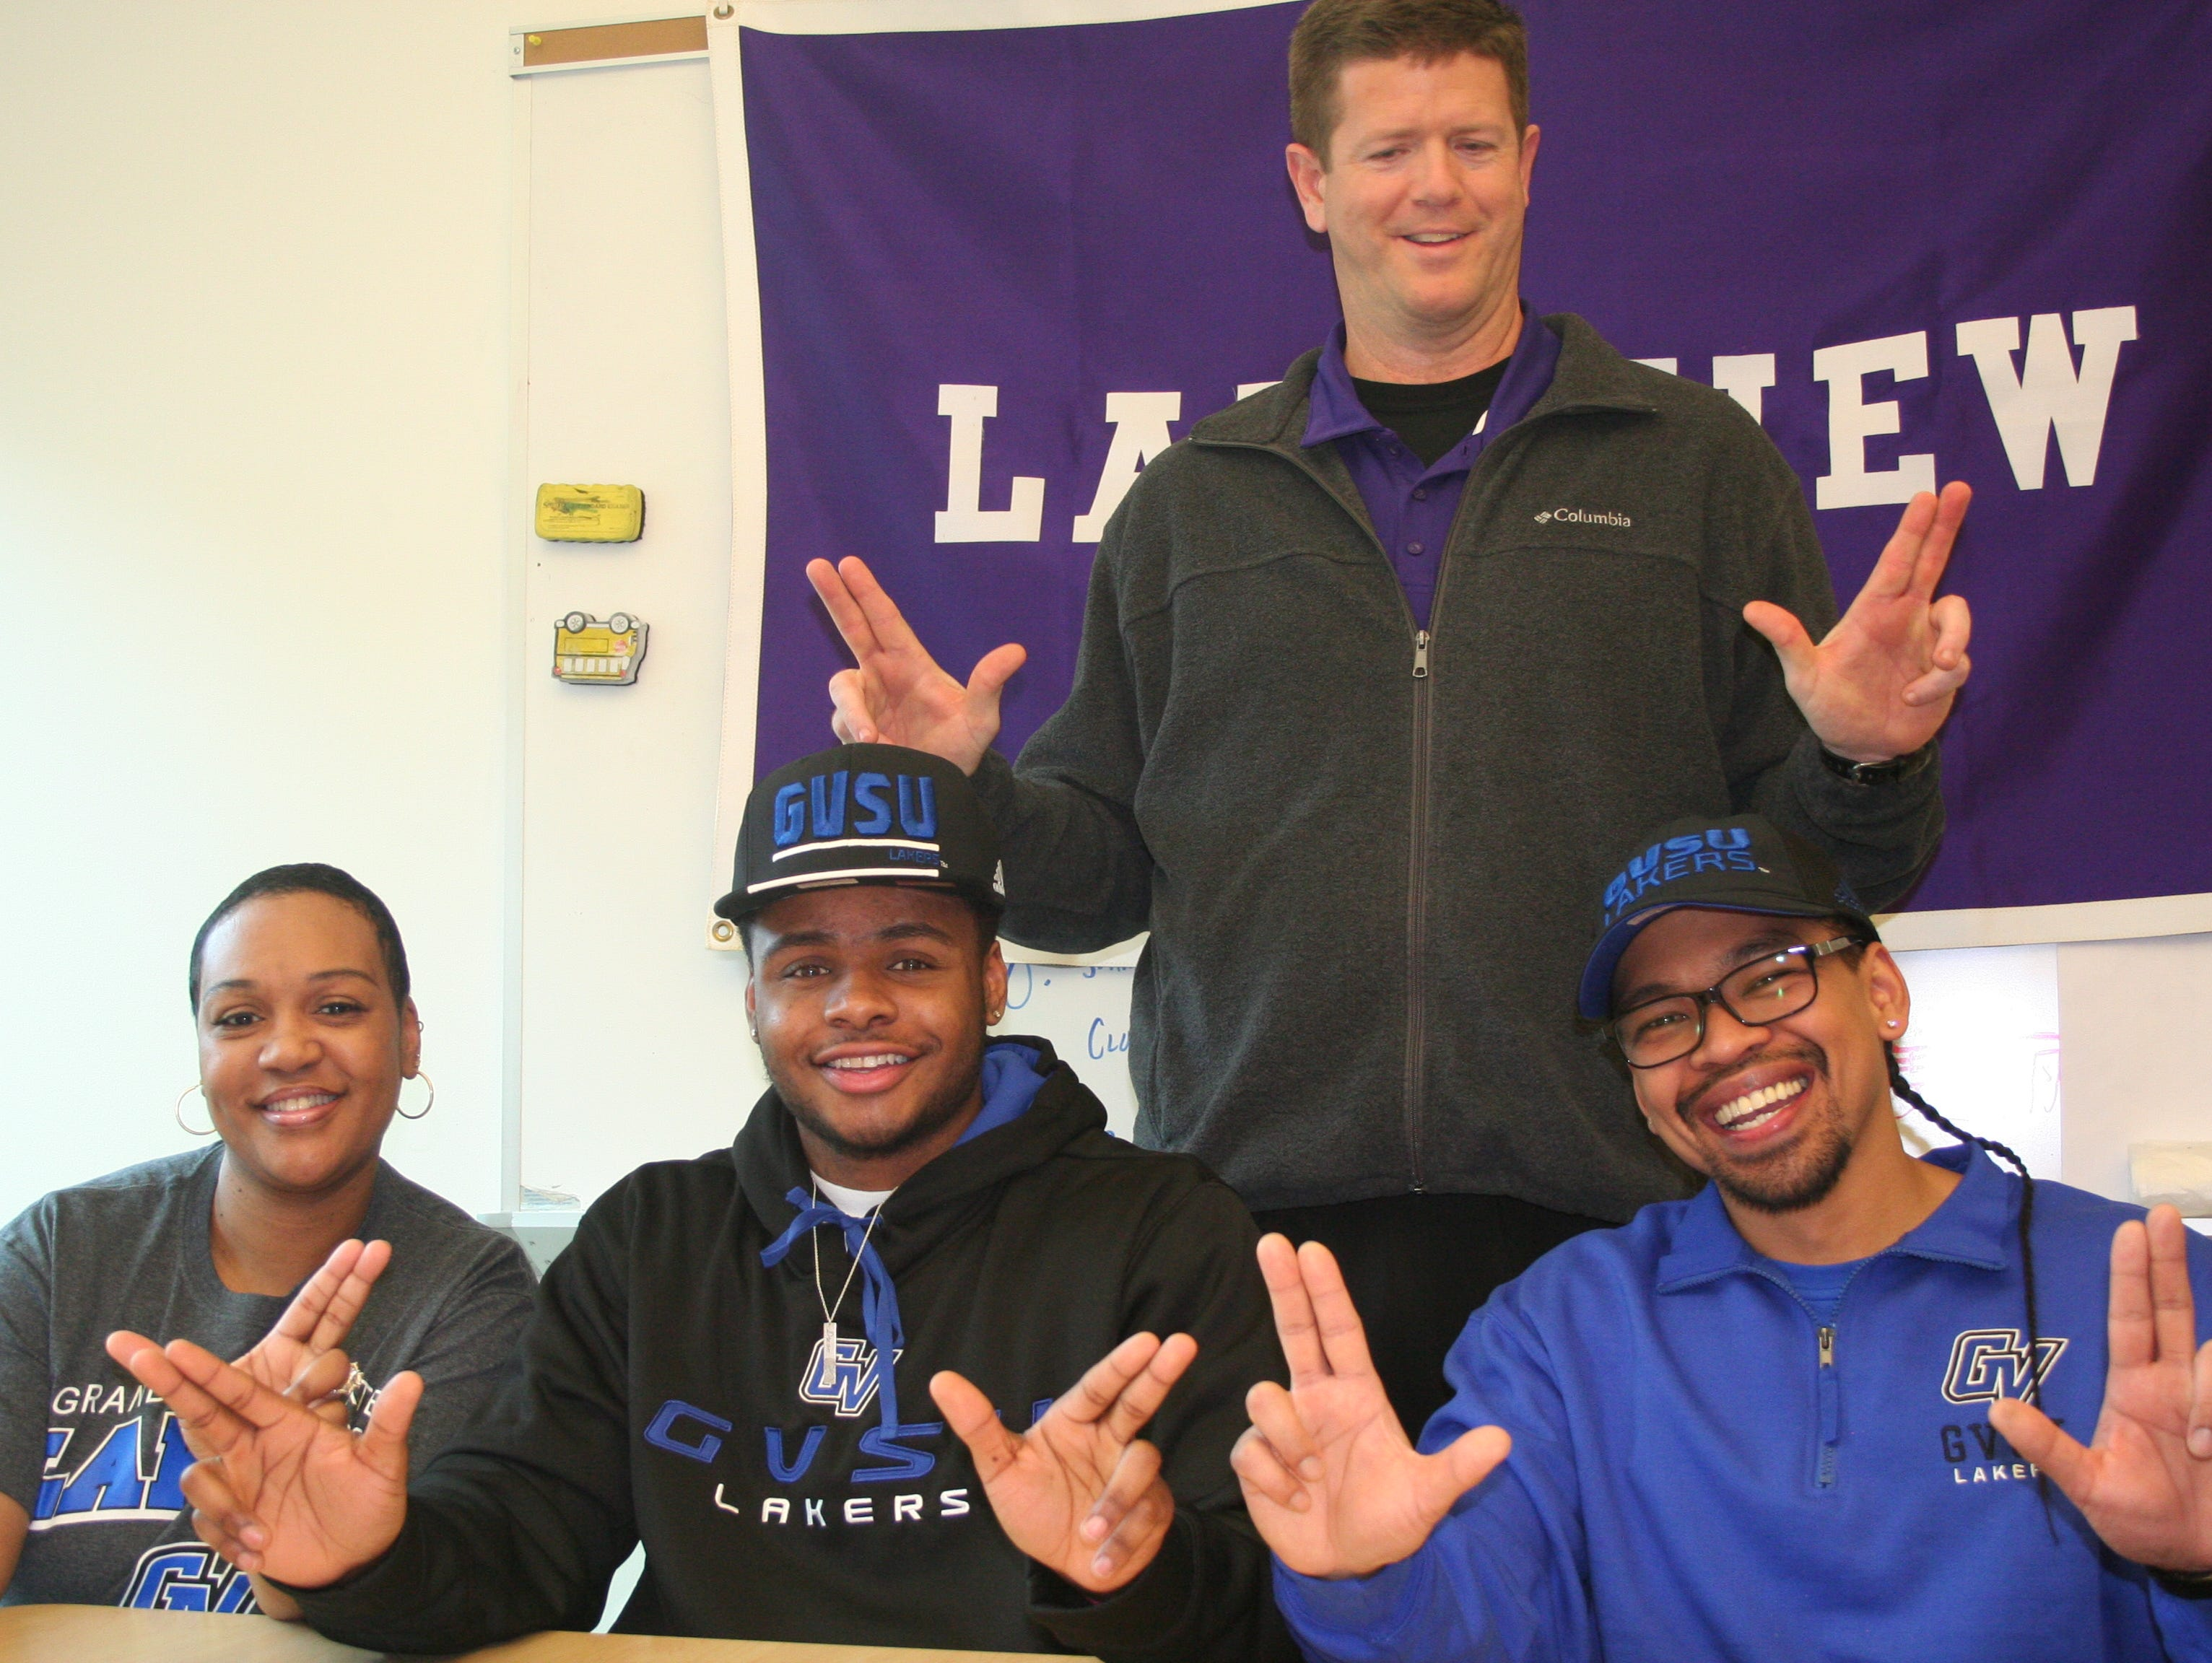 Lakeview's Dre'On Kemp shows the 'Anchor's Up' sign as he signs his National Letter of Intent to play football at Grand Valley State University. He is joined by his parents, Sakeeah Lewis-Galban and Jonathan Galban, along with Lakeview coach Matt Miller (standing).